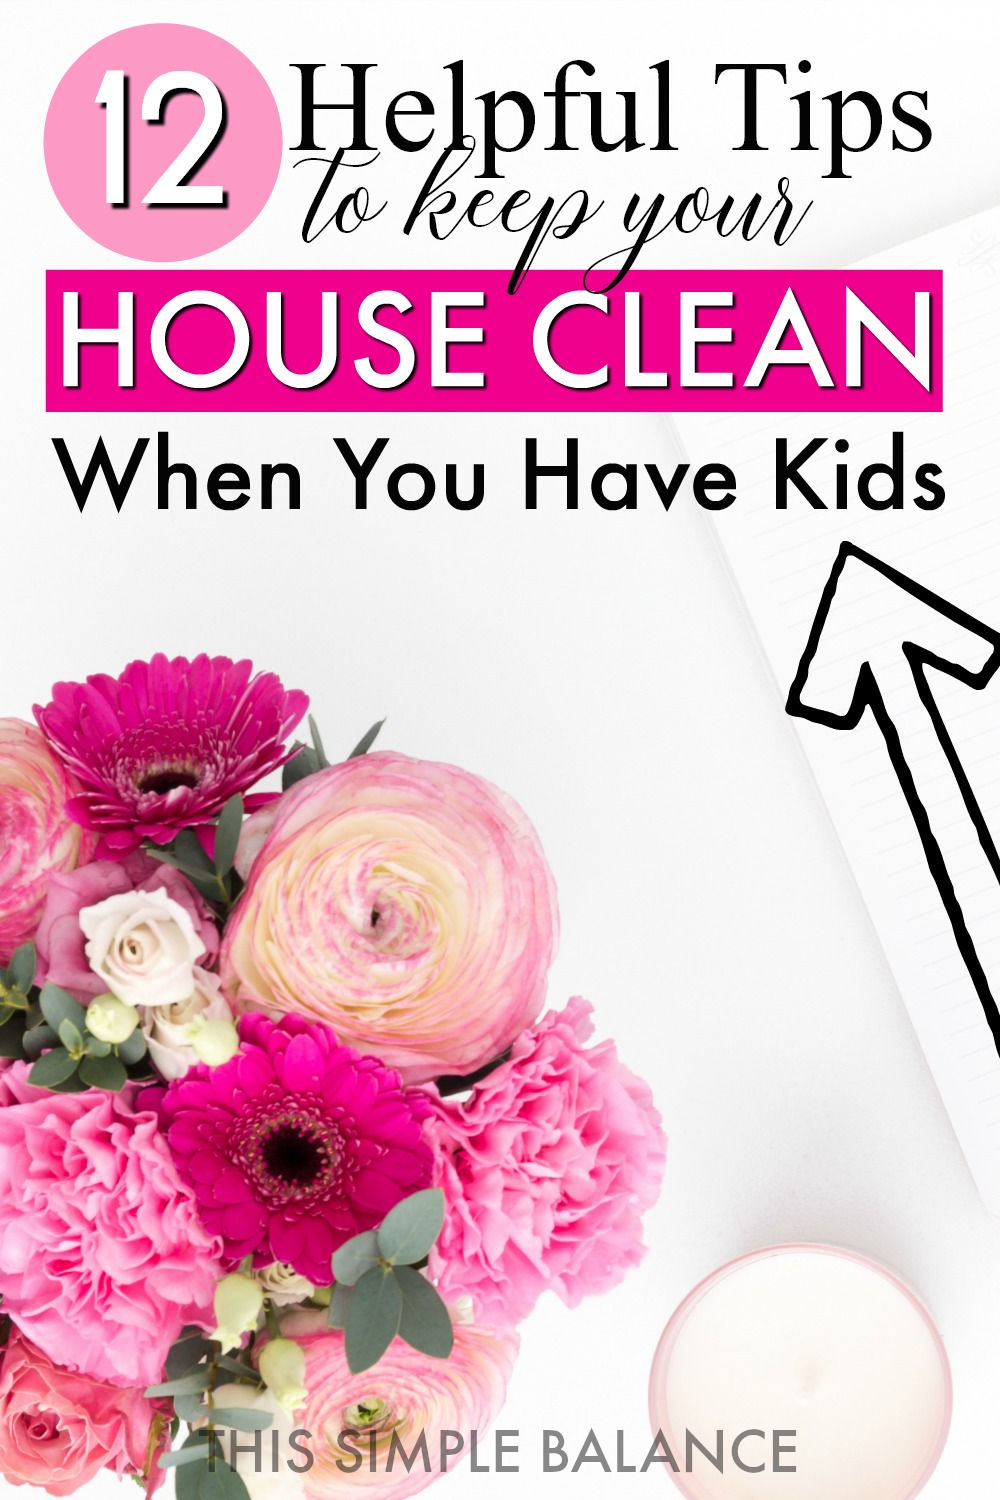 How to Keep Your House Clean with Kids (because keeping your house clean with children is challenging!)